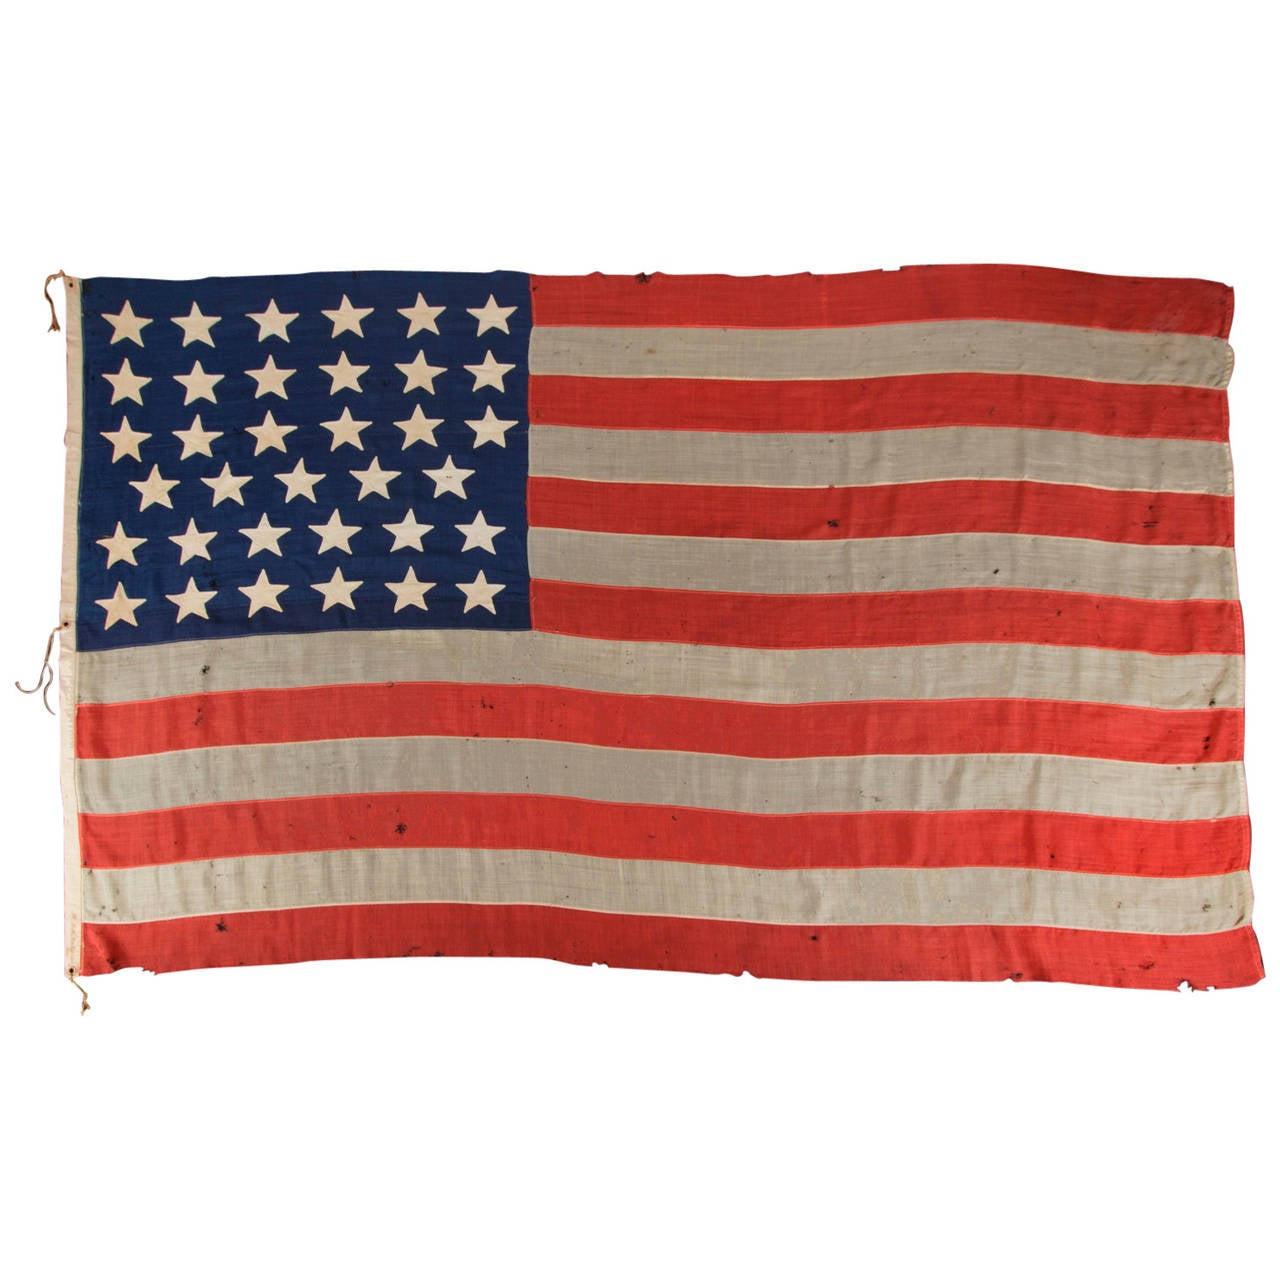 35 Star, Single Appliqued American Flag Signed by a Surgeon, Dr. LP Putnam